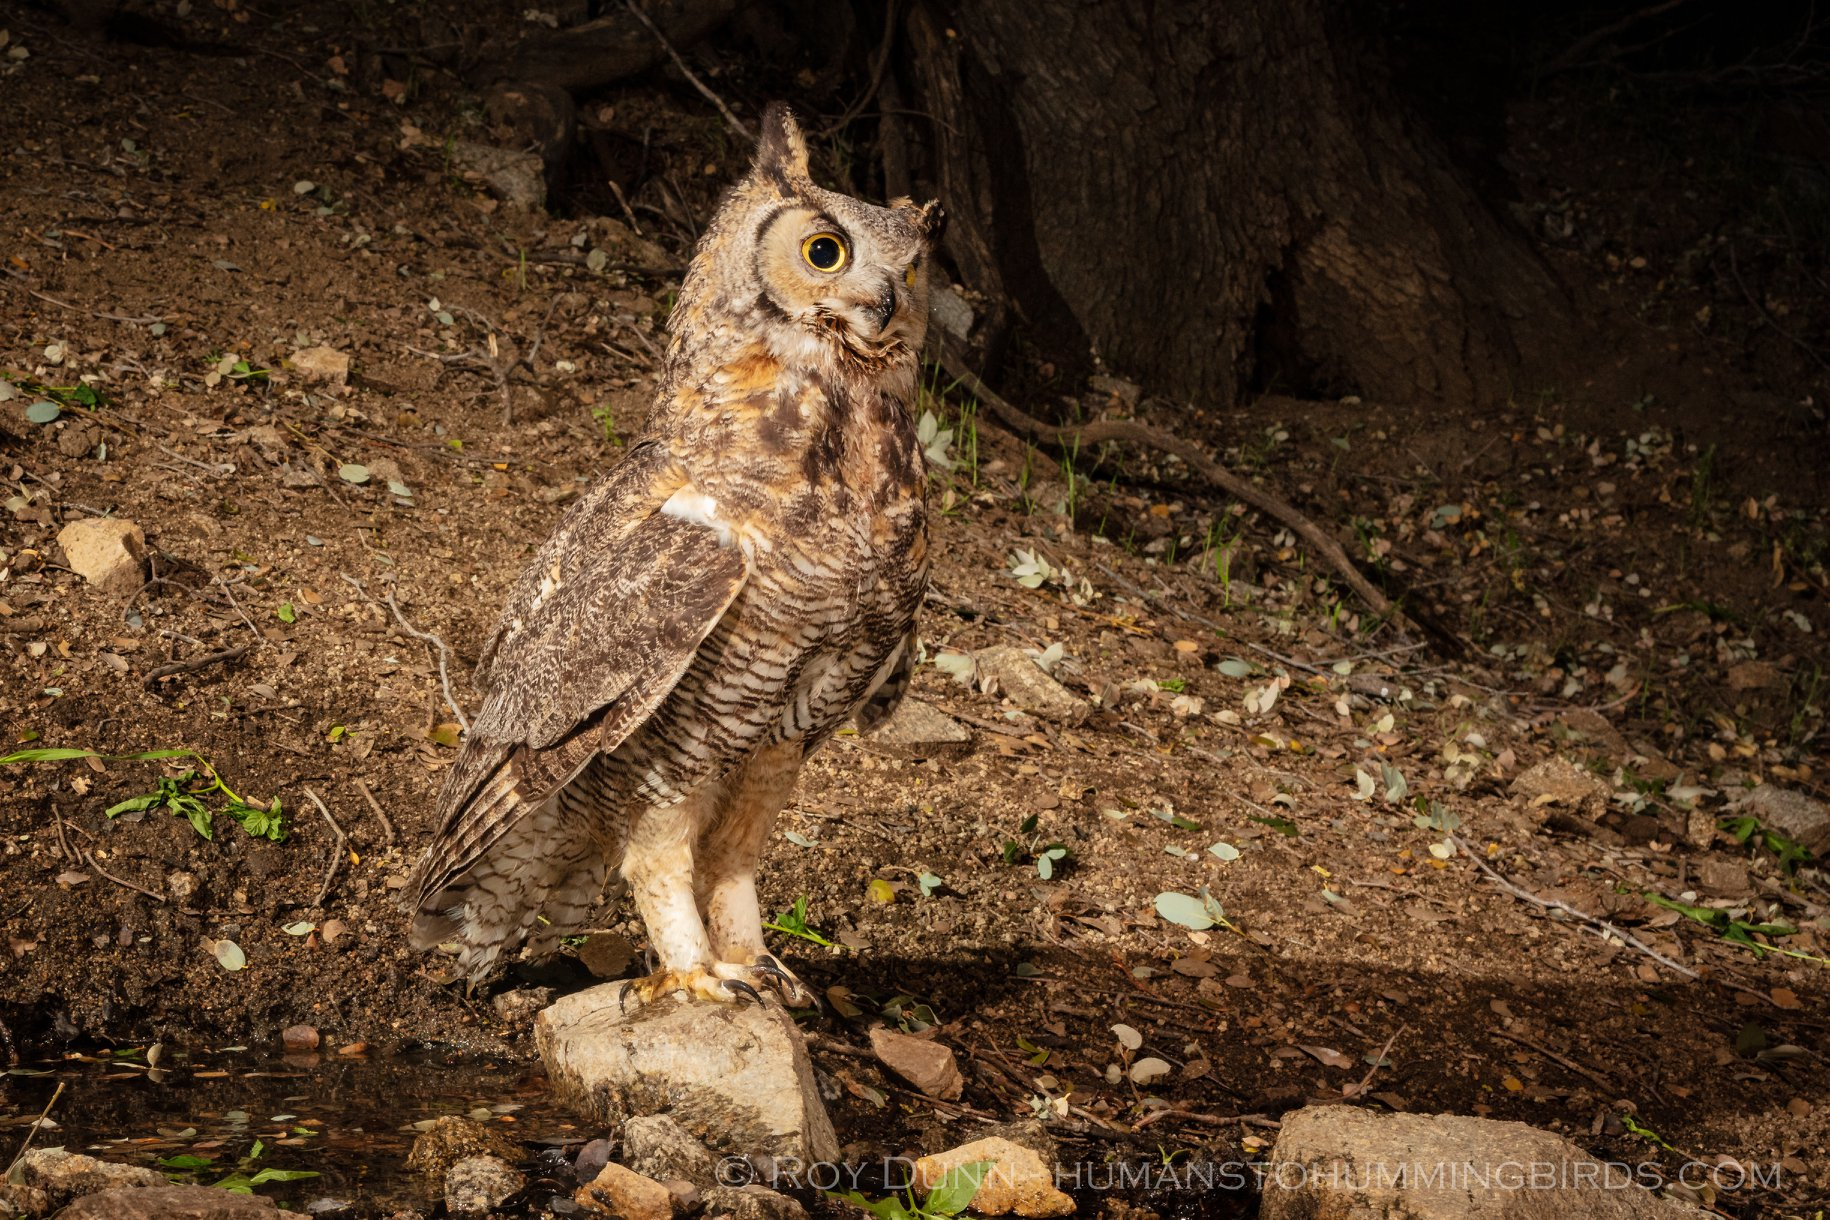 A great-horned owl at a spring on land we have conserved. Photo credit: Roy Dunn-HUMANSTOHUMMINGBIRDS.COM